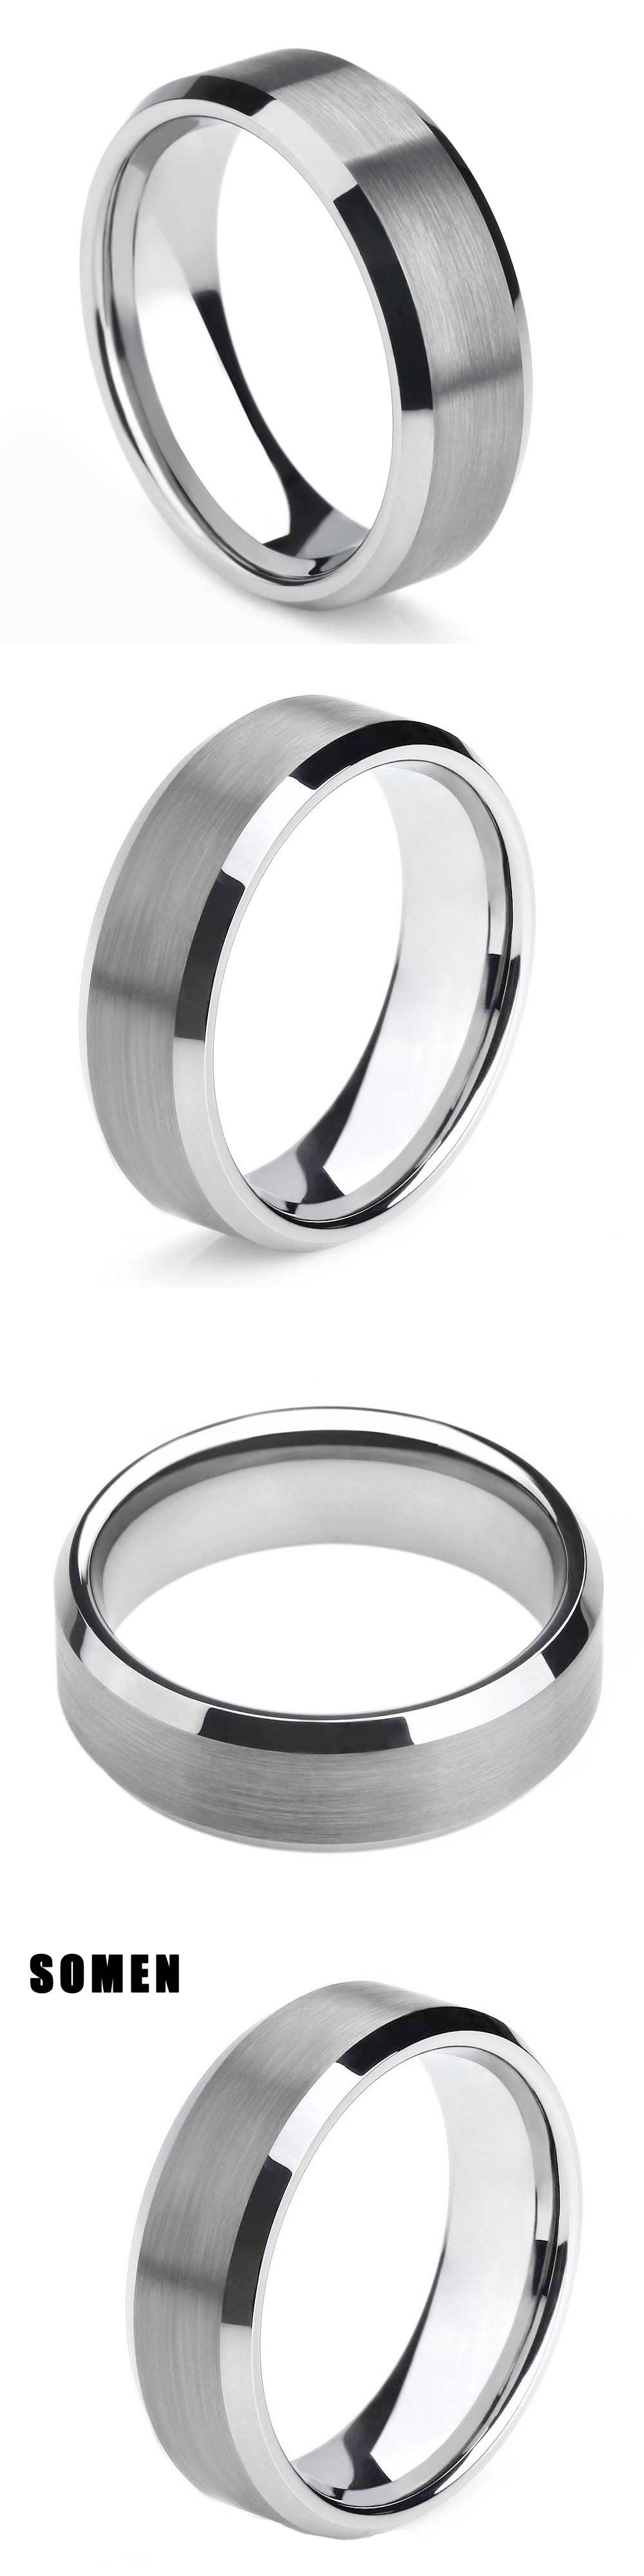 rose queenwish black wedding blue gold ring best brushed rings stripe of tungsten carbide